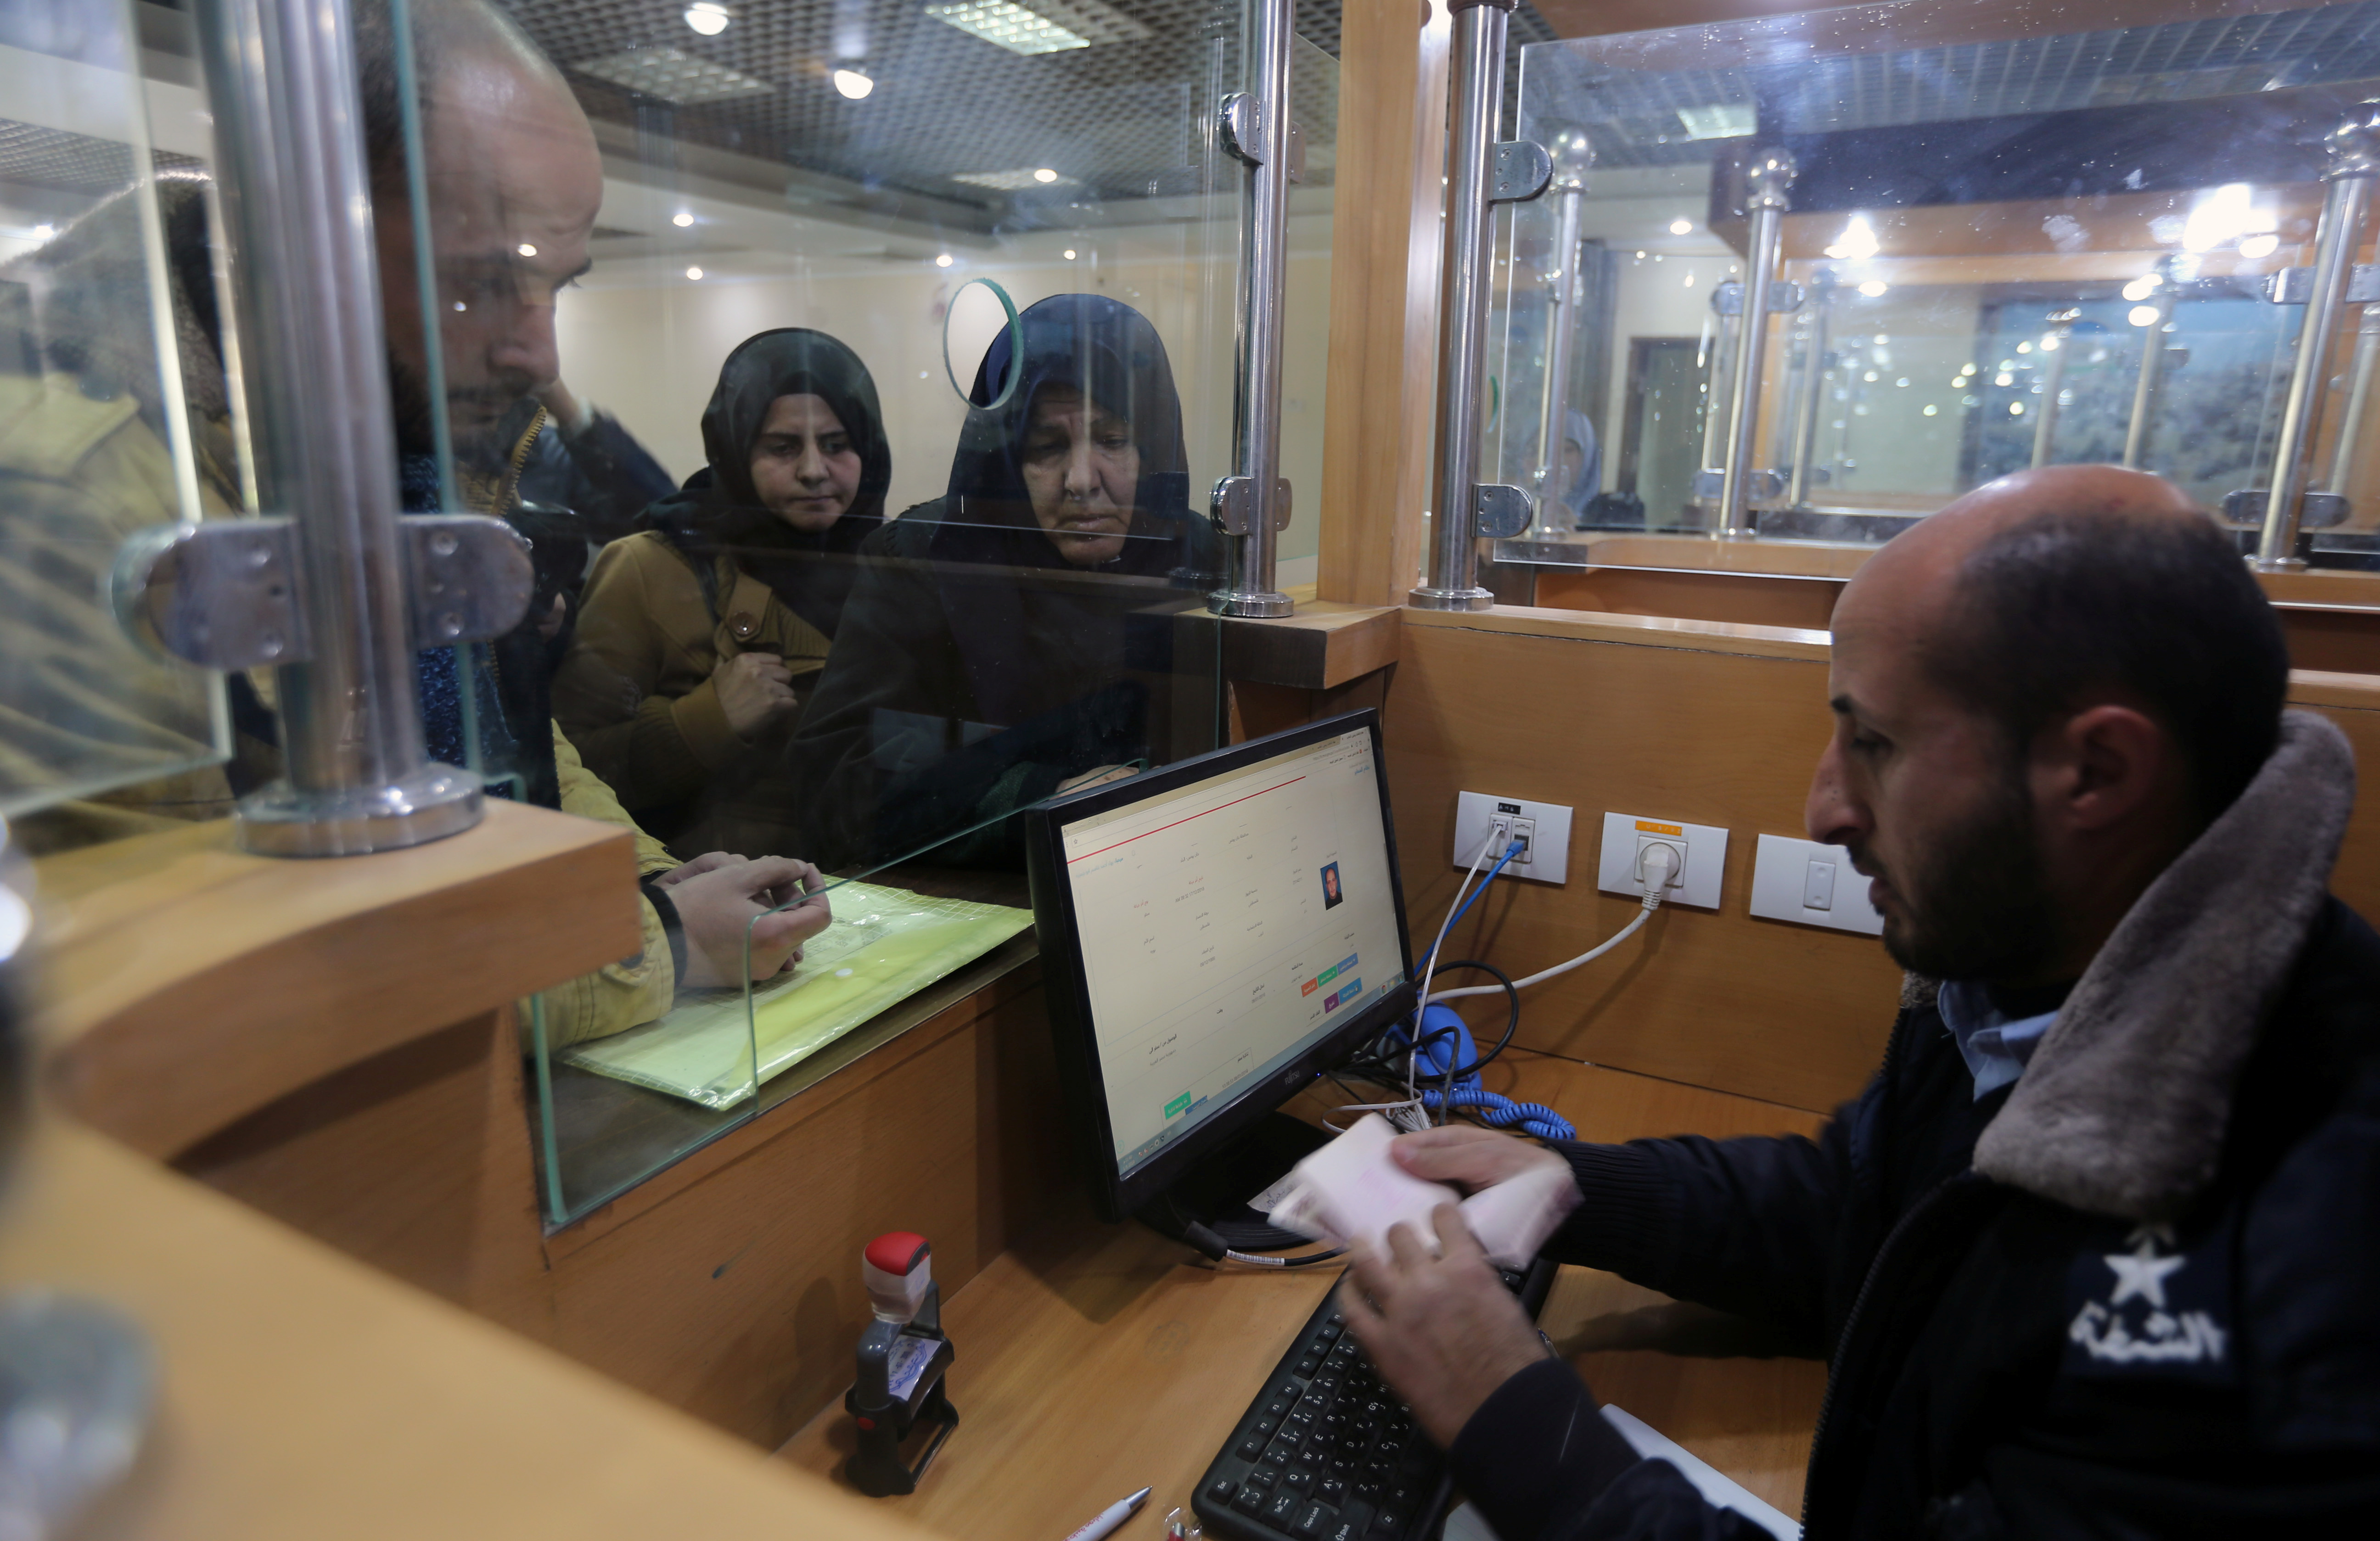 A Palestinian Hamas-hired police officer checks the documents of people upon their return from Egypt, at Rafah border crossing in the southern Gaza Strip January 8, 2019. REUTERS/Ibraheem Abu Mustafa